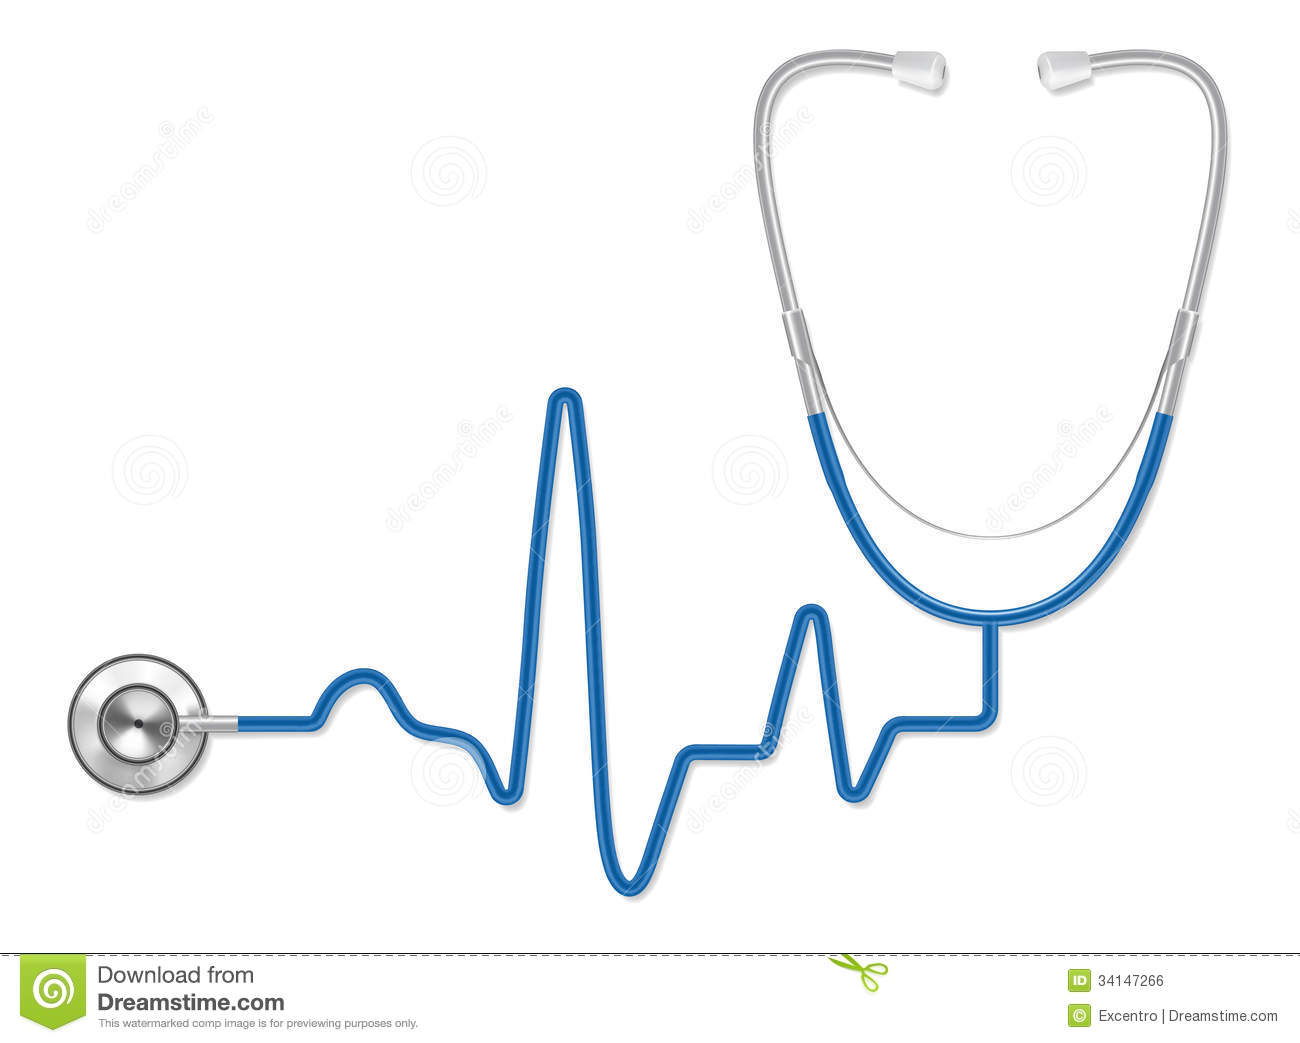 Free Clipart Sound Of A Heart Beating Stethoscope Heart Beat Image